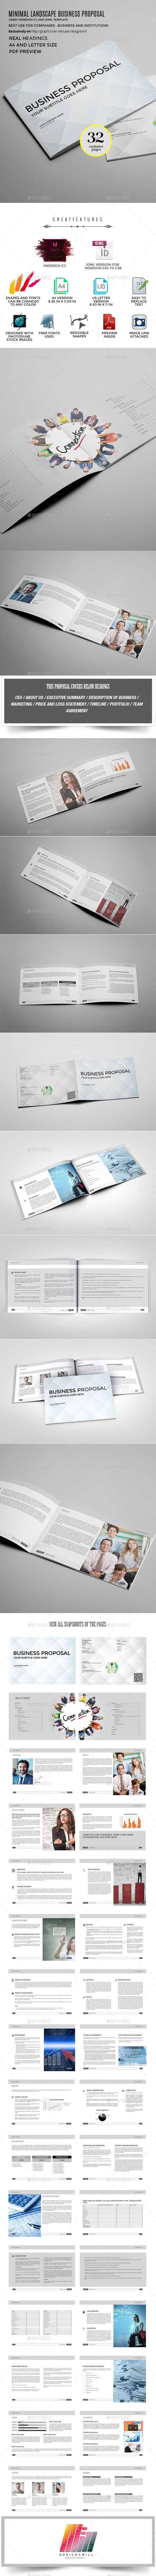 GraphicRiver Simple and Minimal Proposal Template 10104744